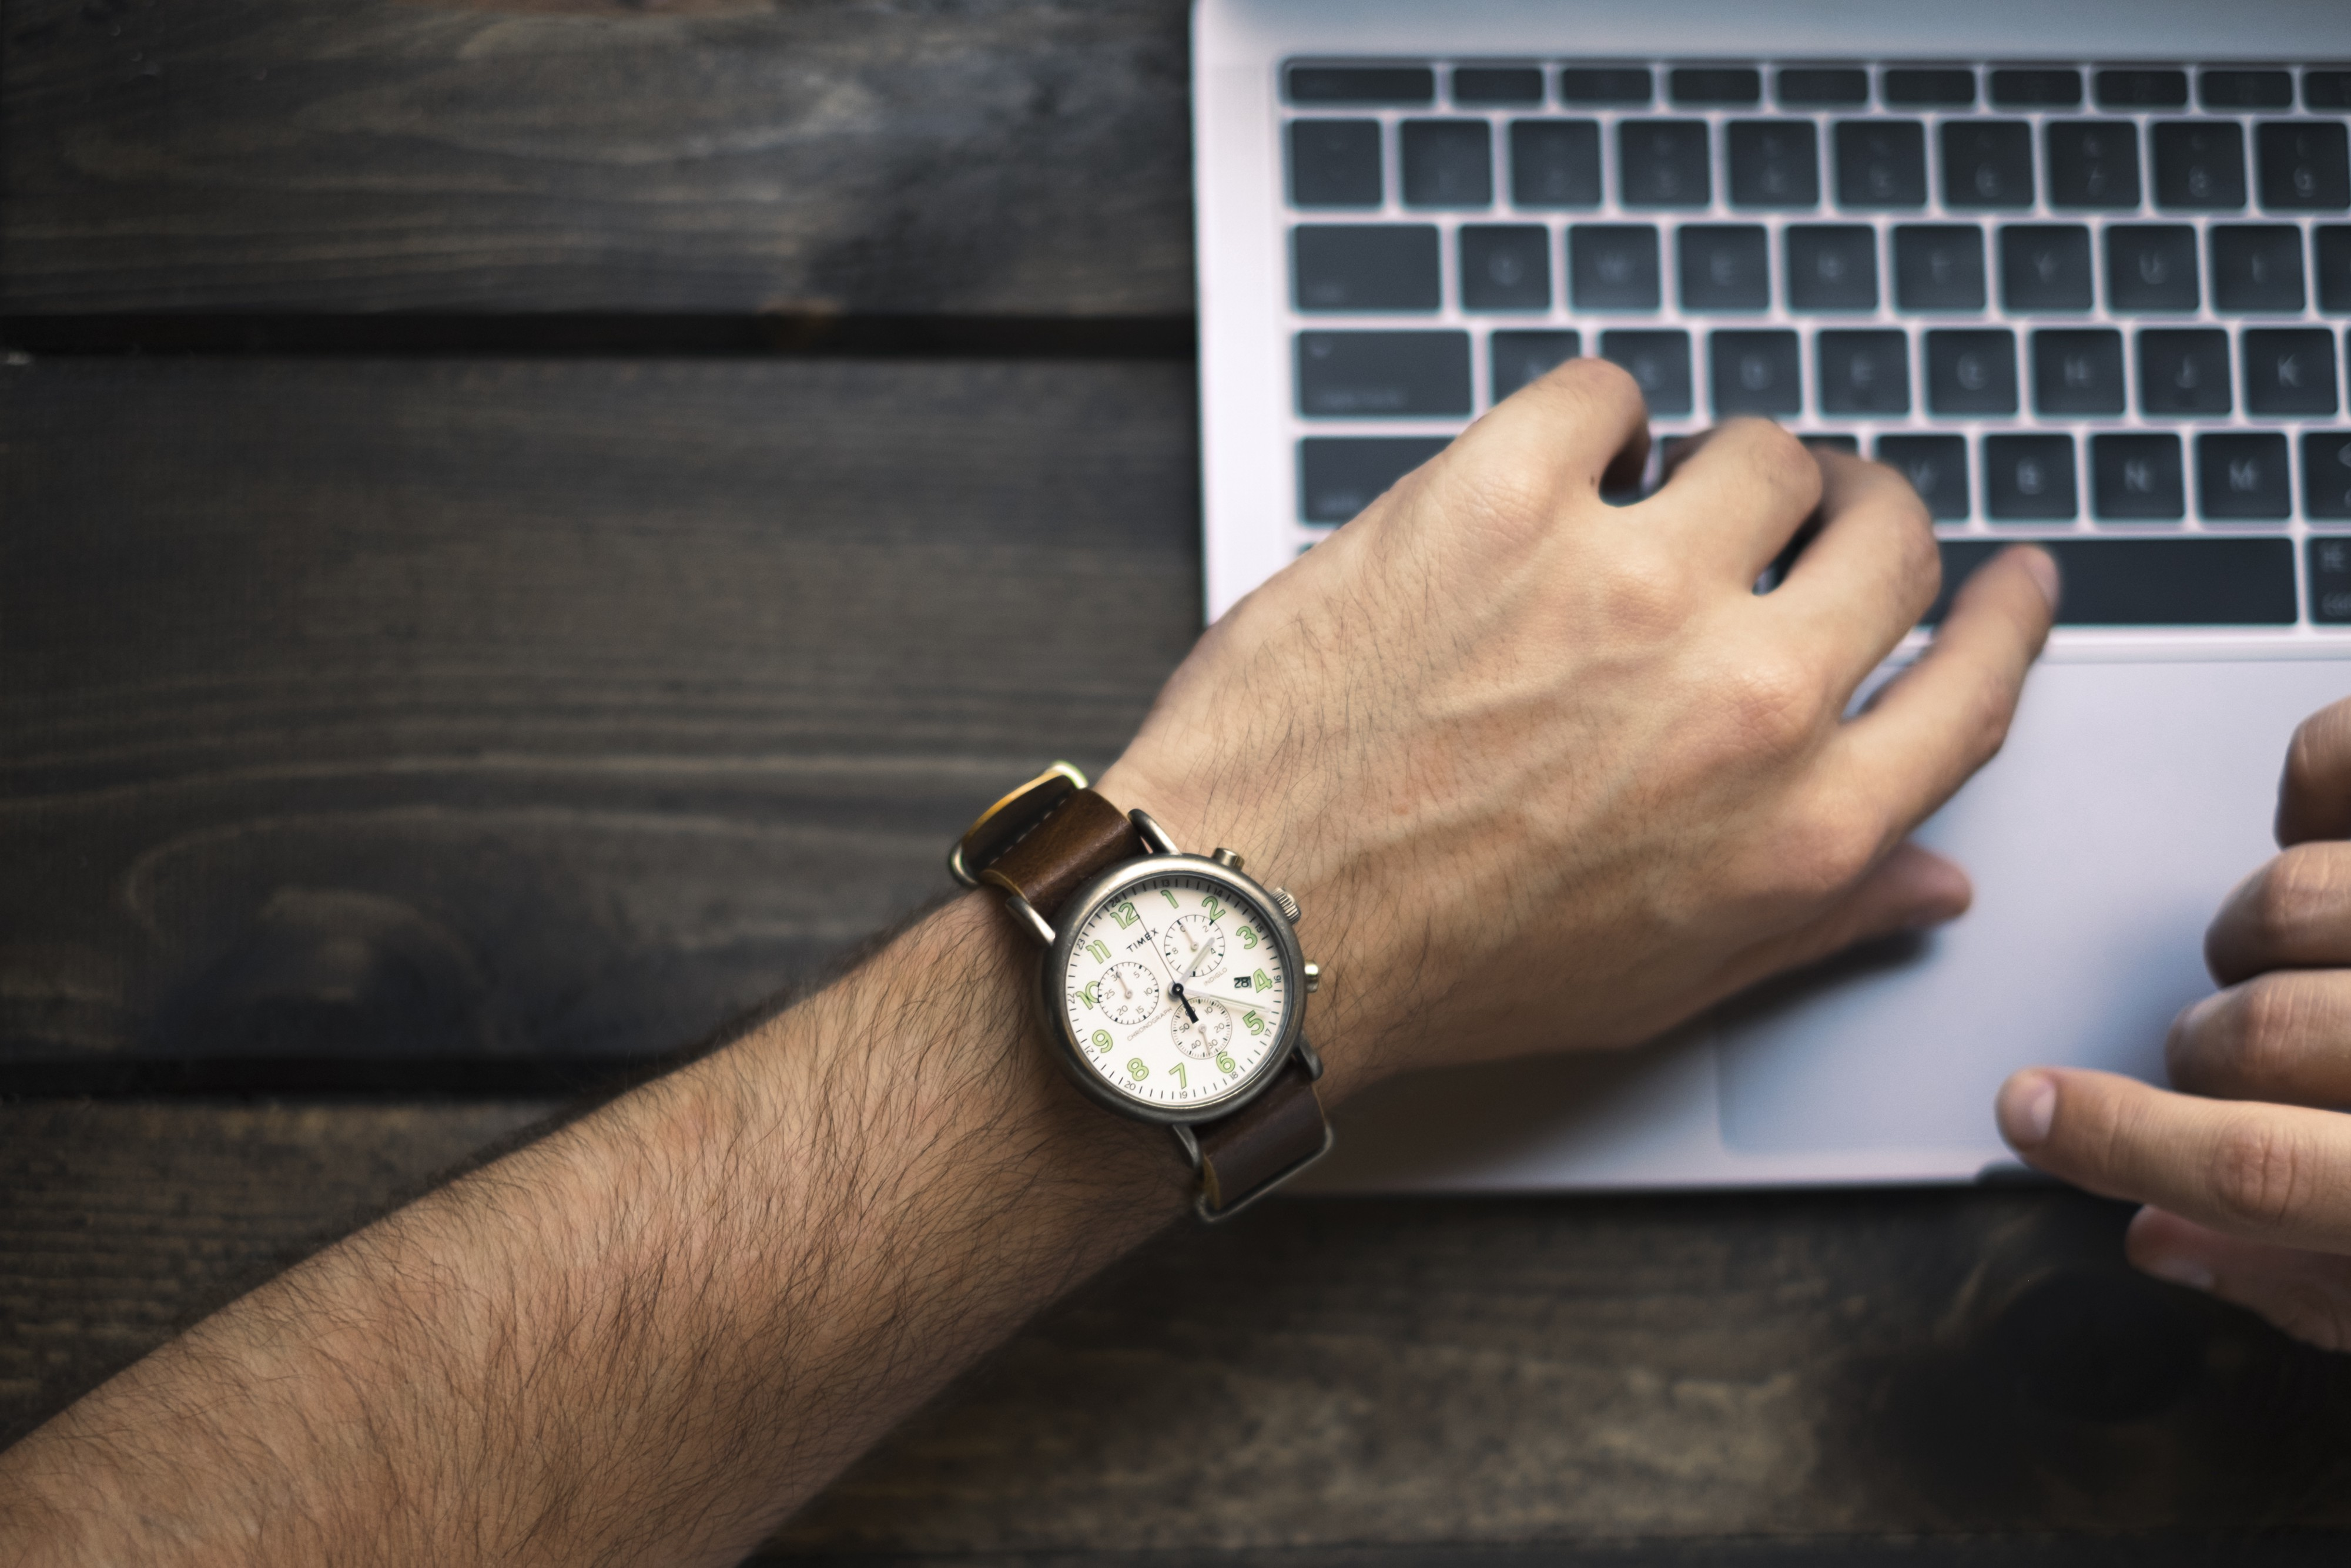 A busy entrepreneur checks his watch at his computer. He is busy with his task.